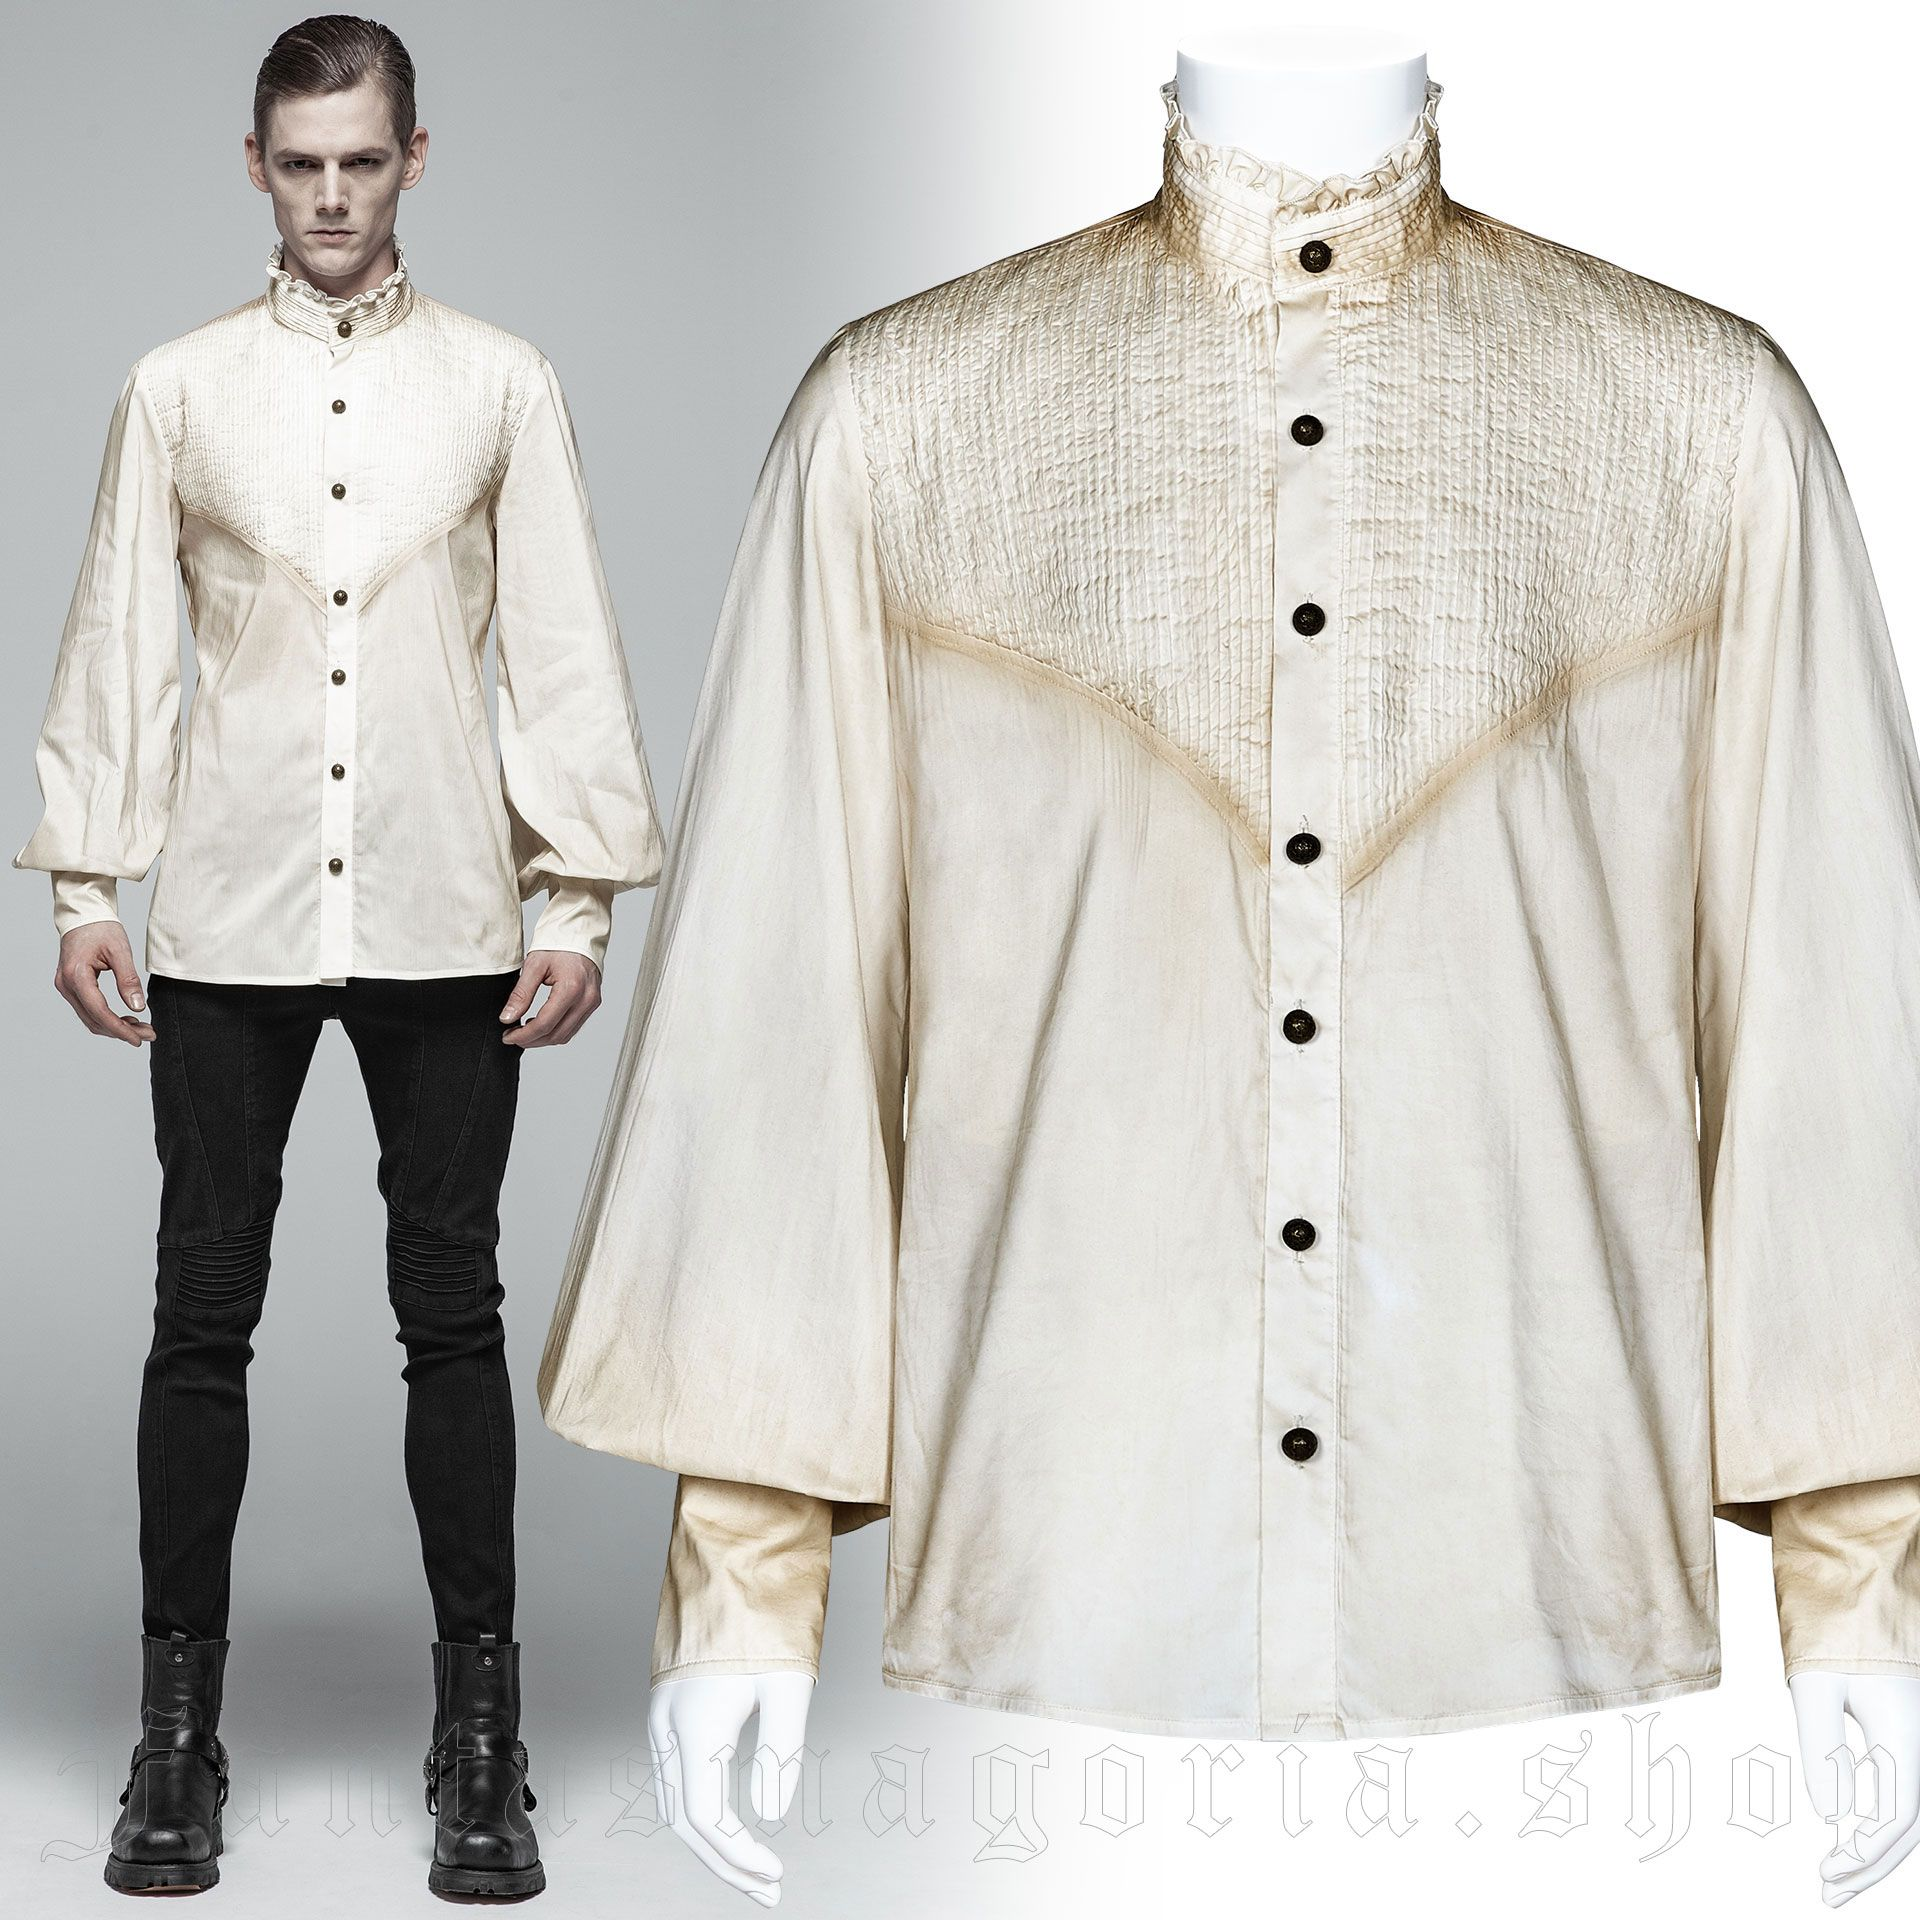 men's Charon Shirt by PUNK RAVE brand, code: WY-1029/WH